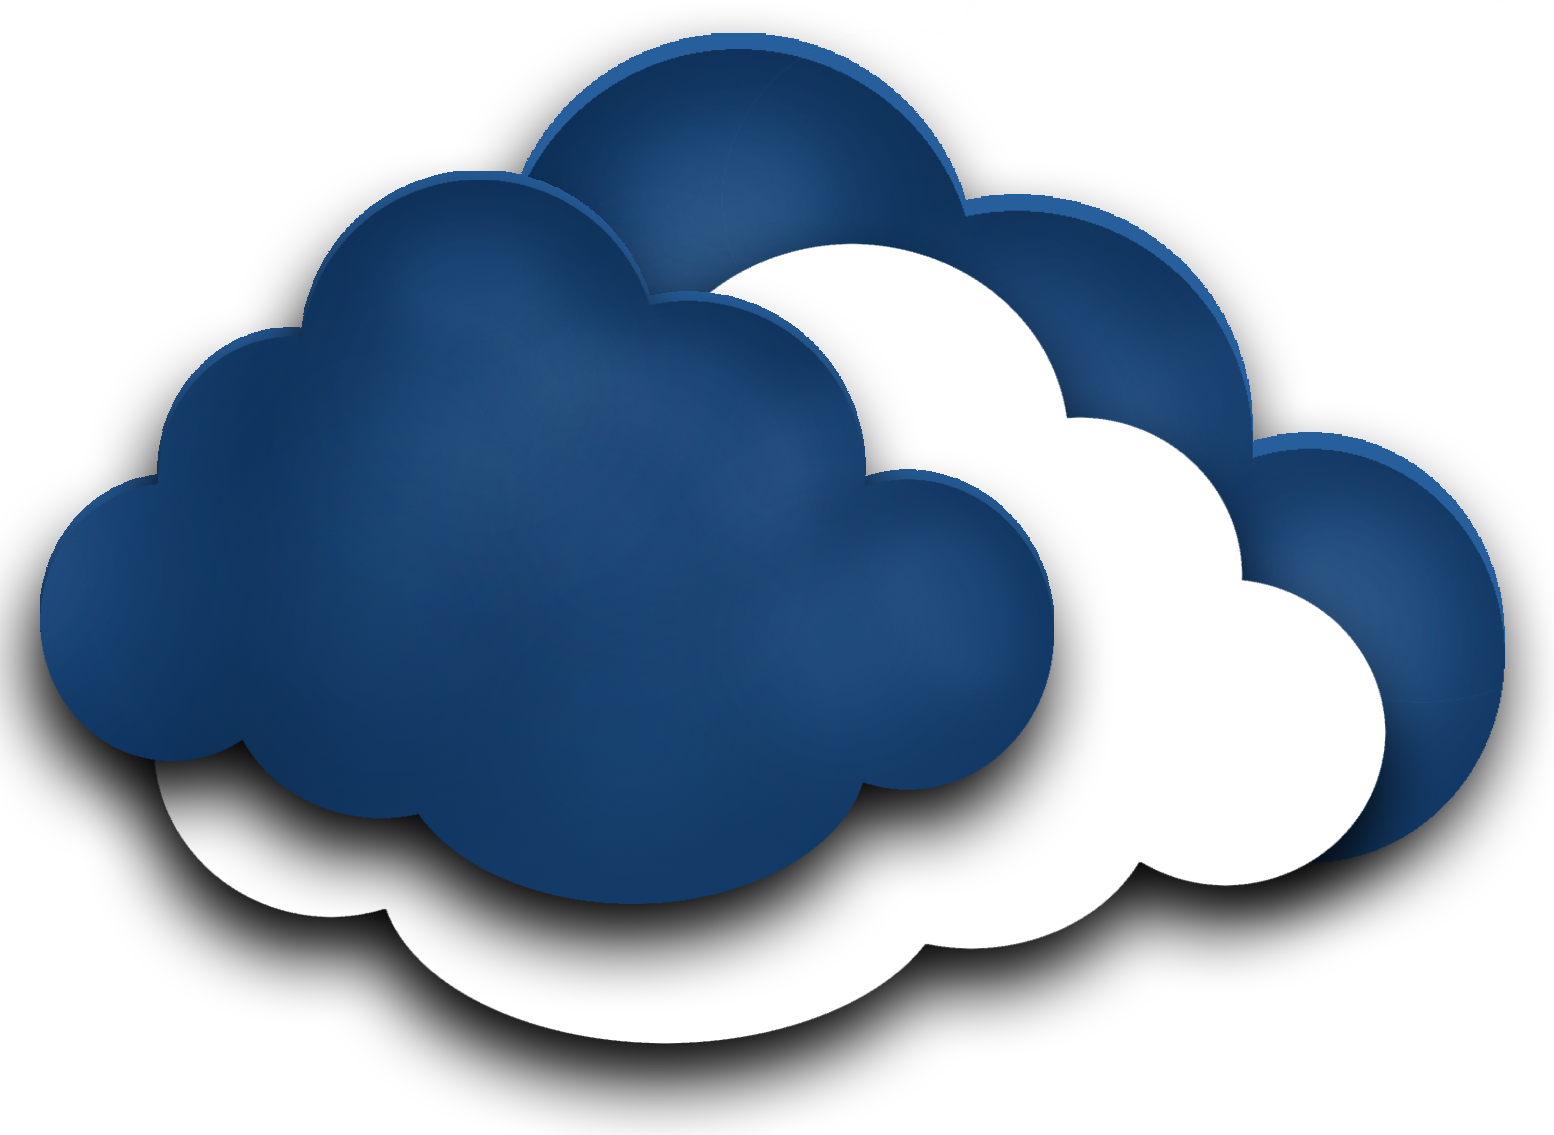 Blue cloud png. Clouds transparent pictures free